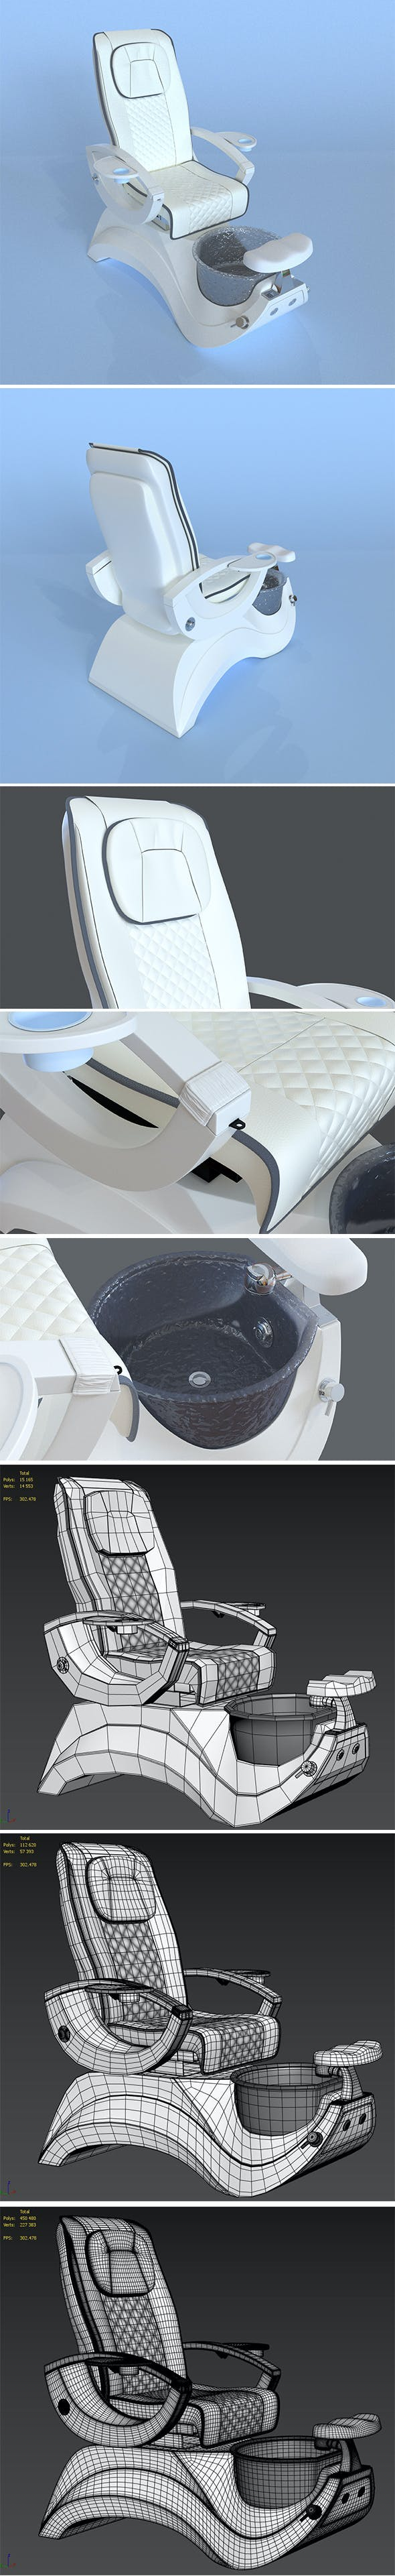 Whale SPA Pedicure Chair - 3DOcean Item for Sale